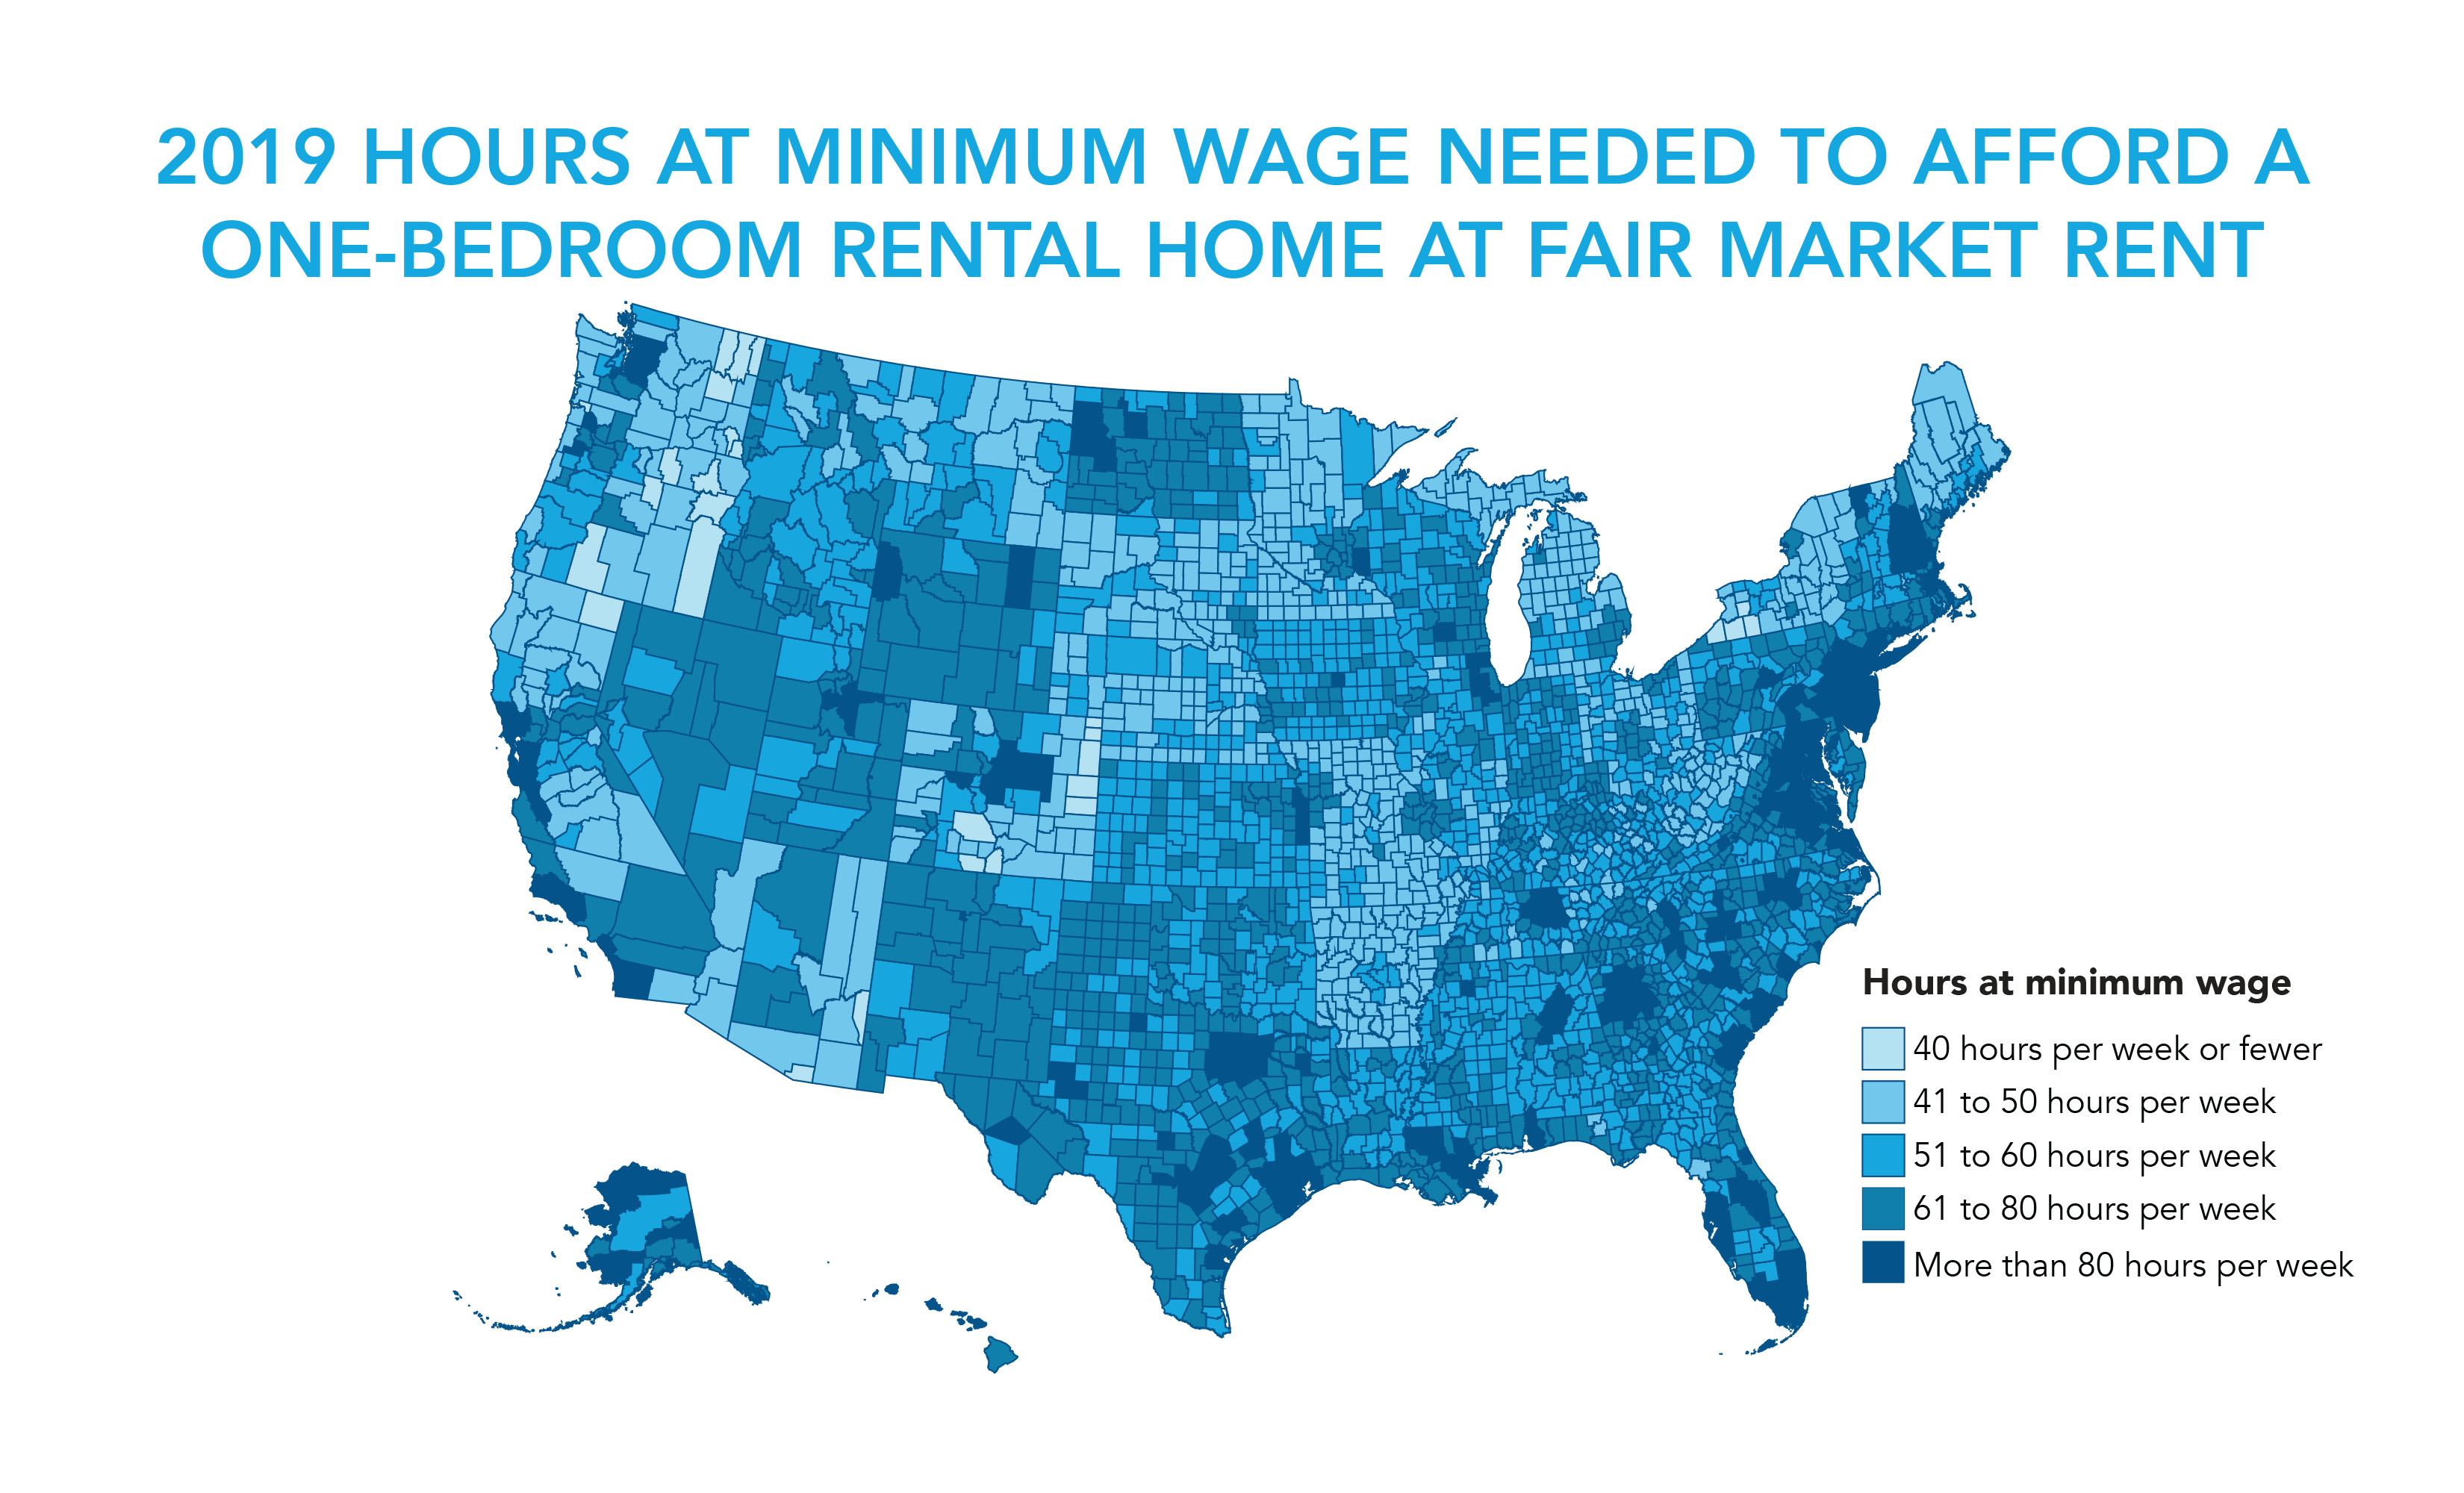 Affordable housing for minimum wage workers doesn't exist